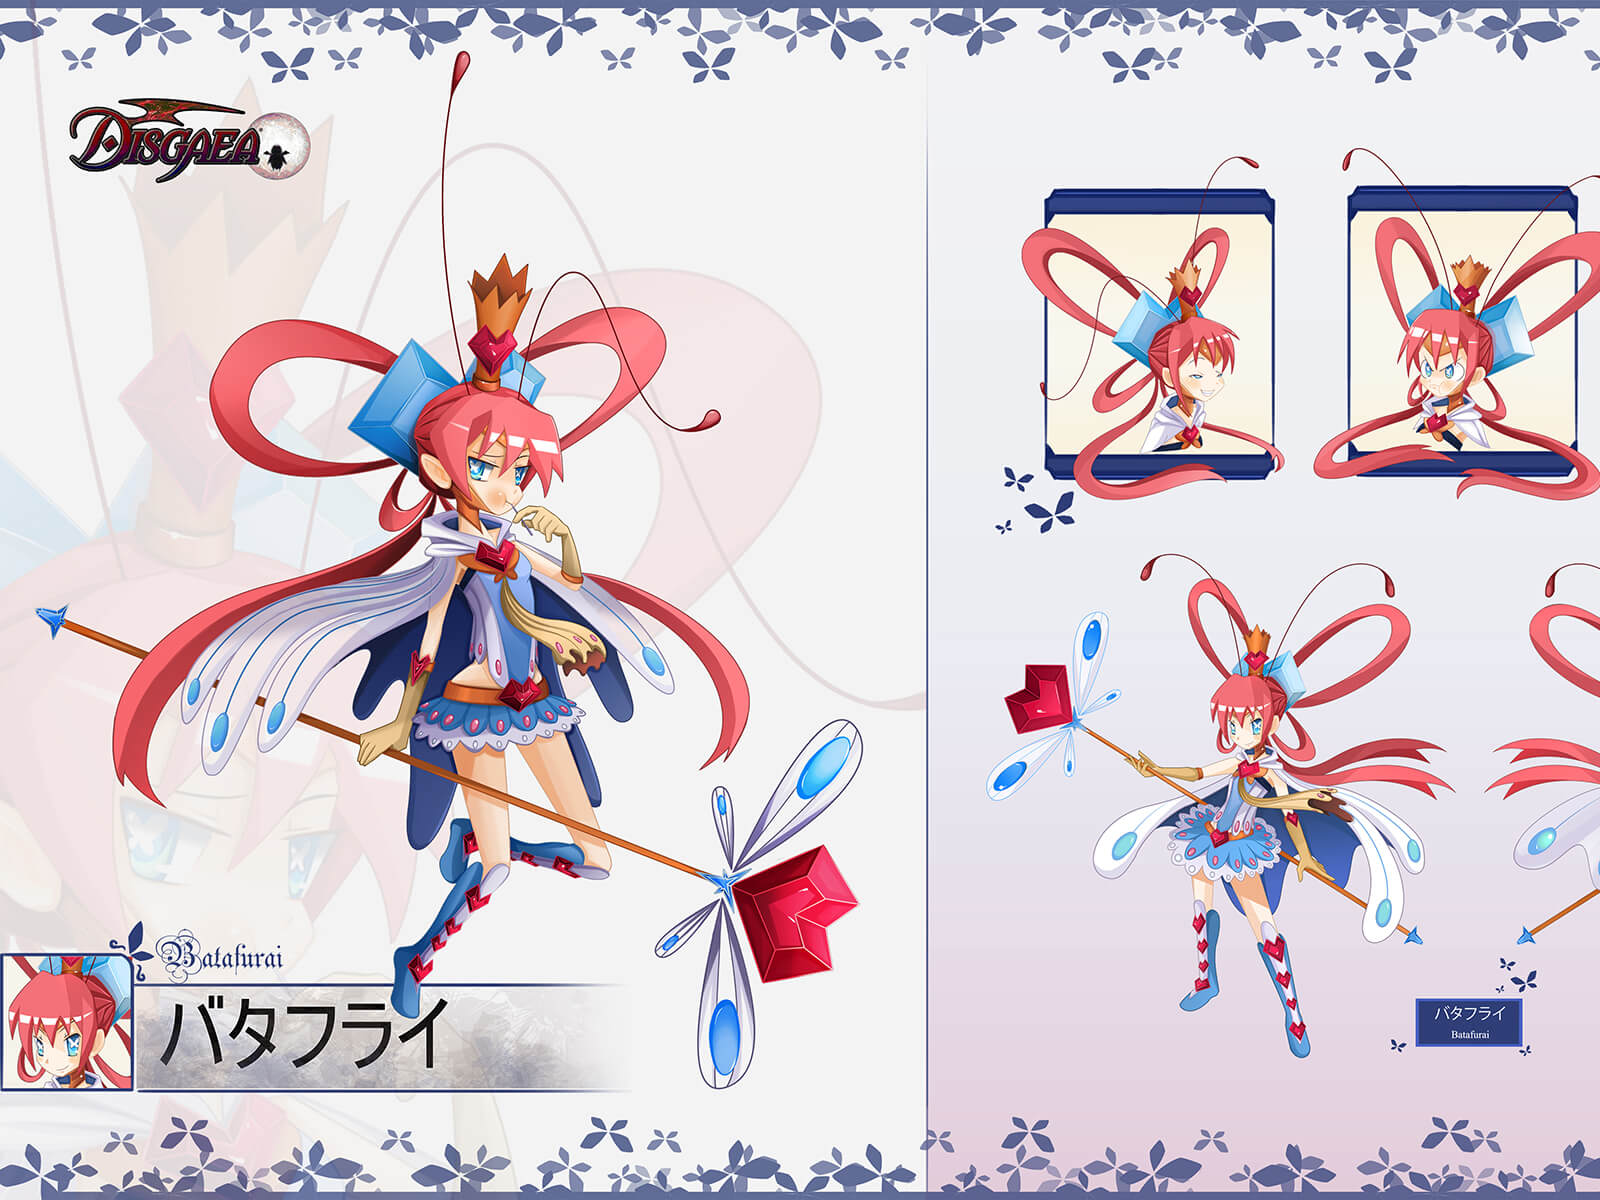 Triptych of a red-haired anime-style girl in blue-and-white fairy costume in different poses holding a heart-topped staff.